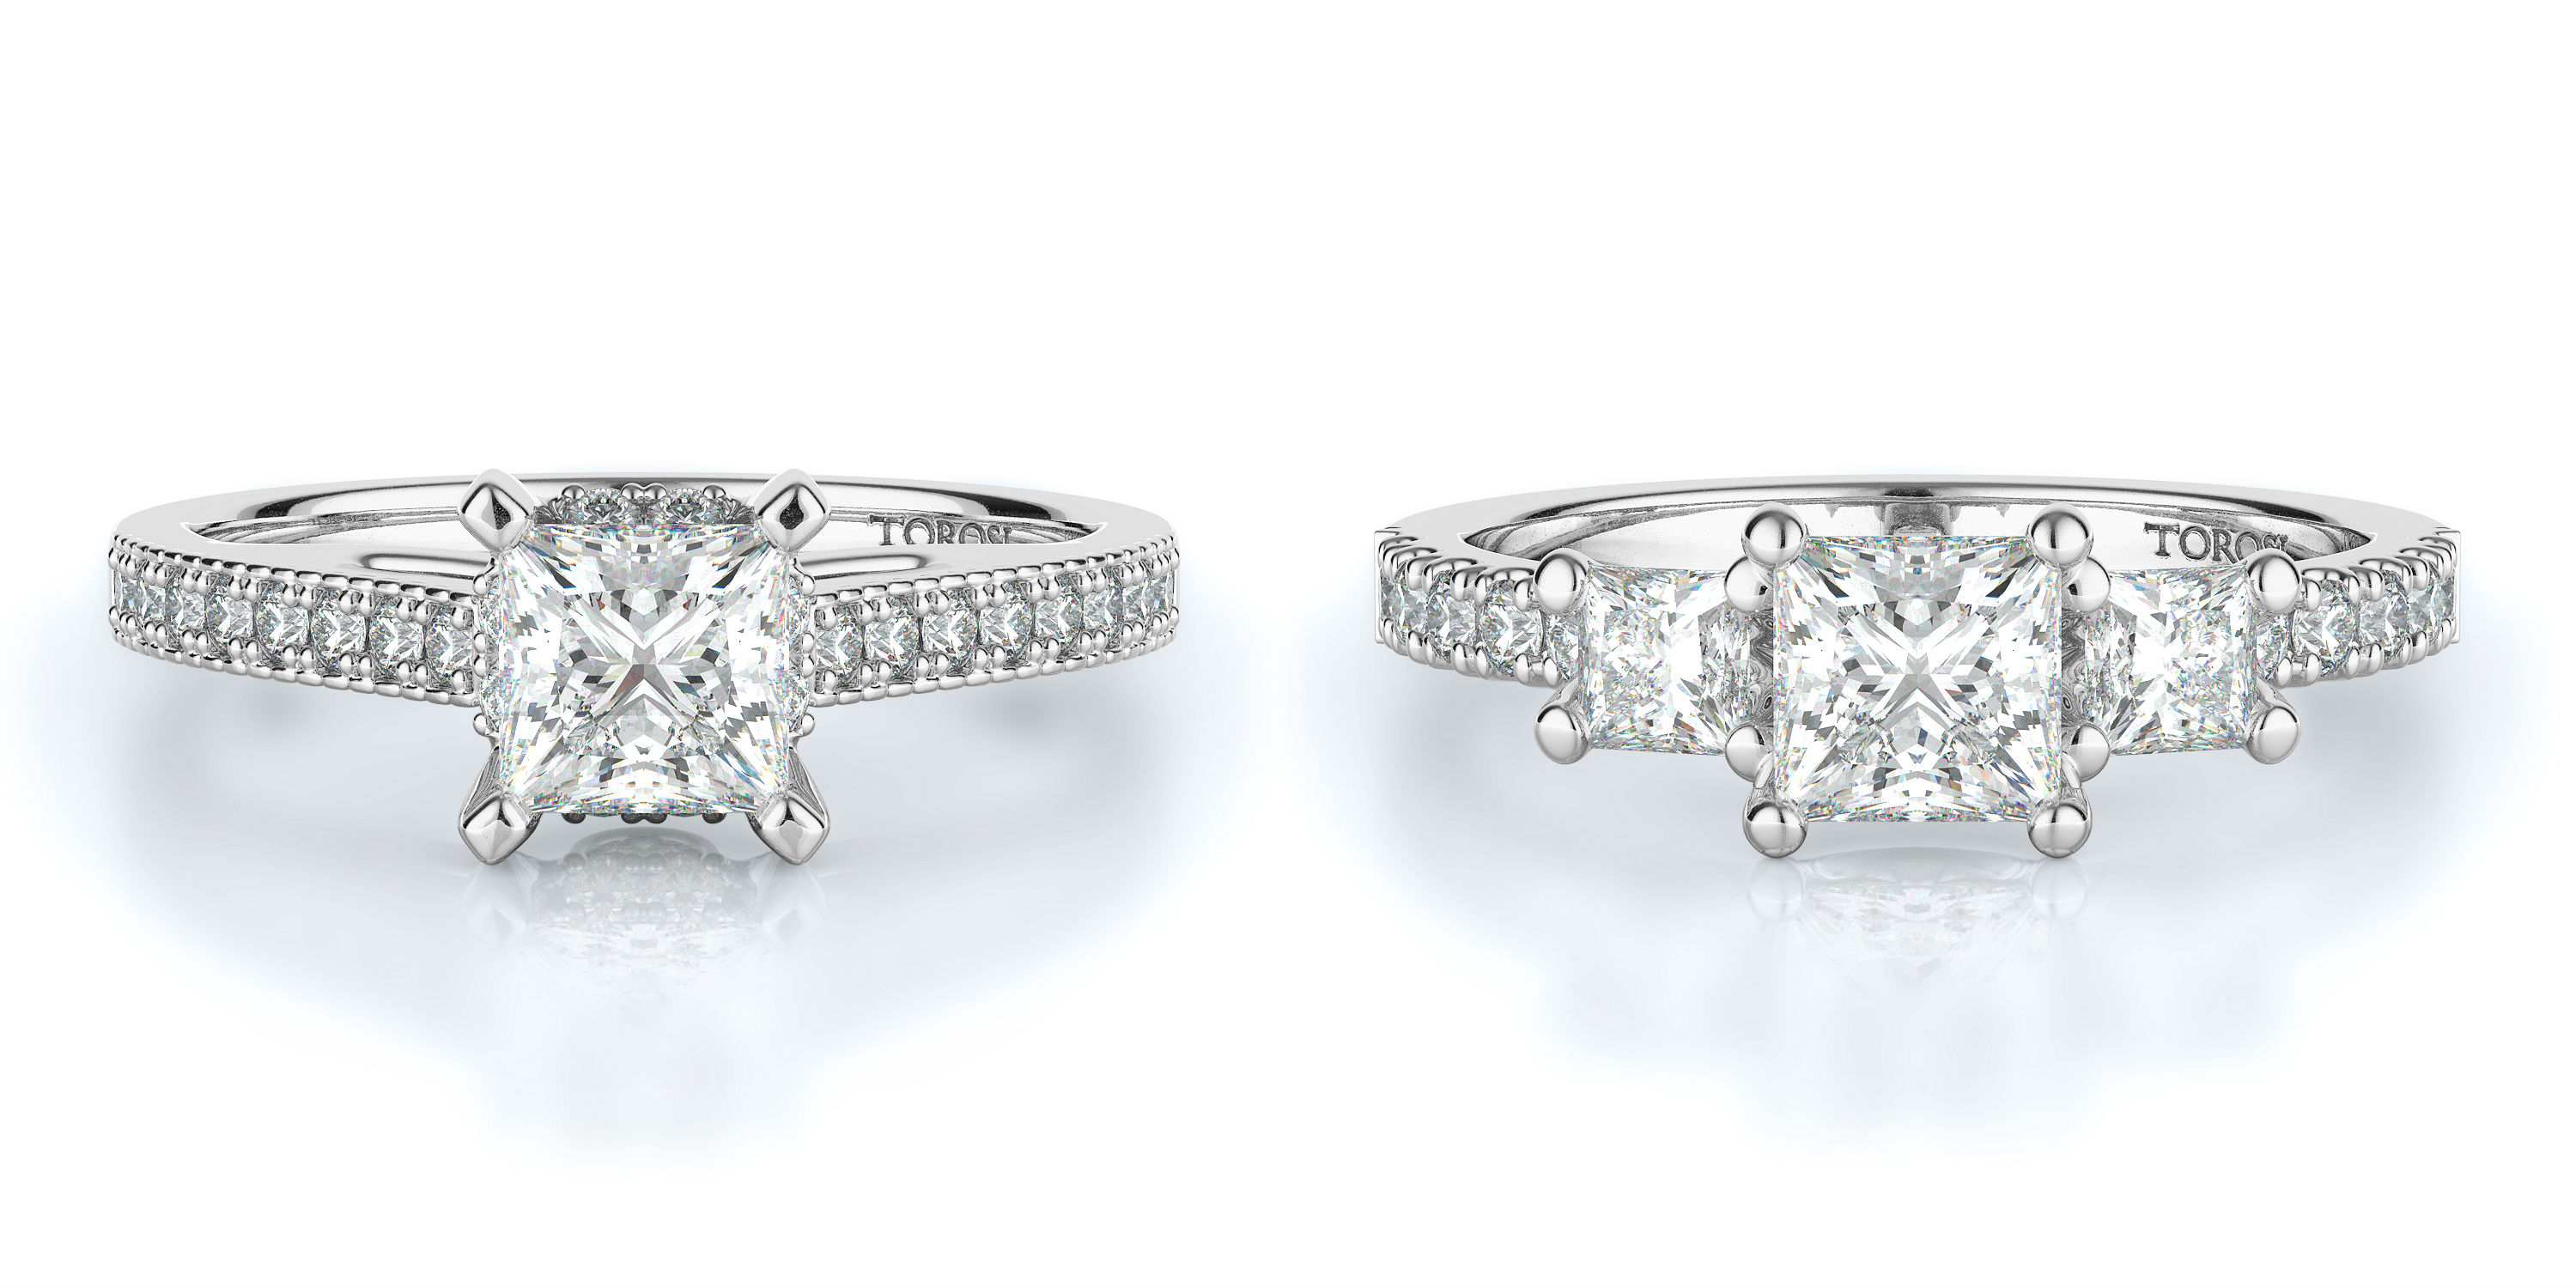 Princess Cut Engagement Rings at Torosi